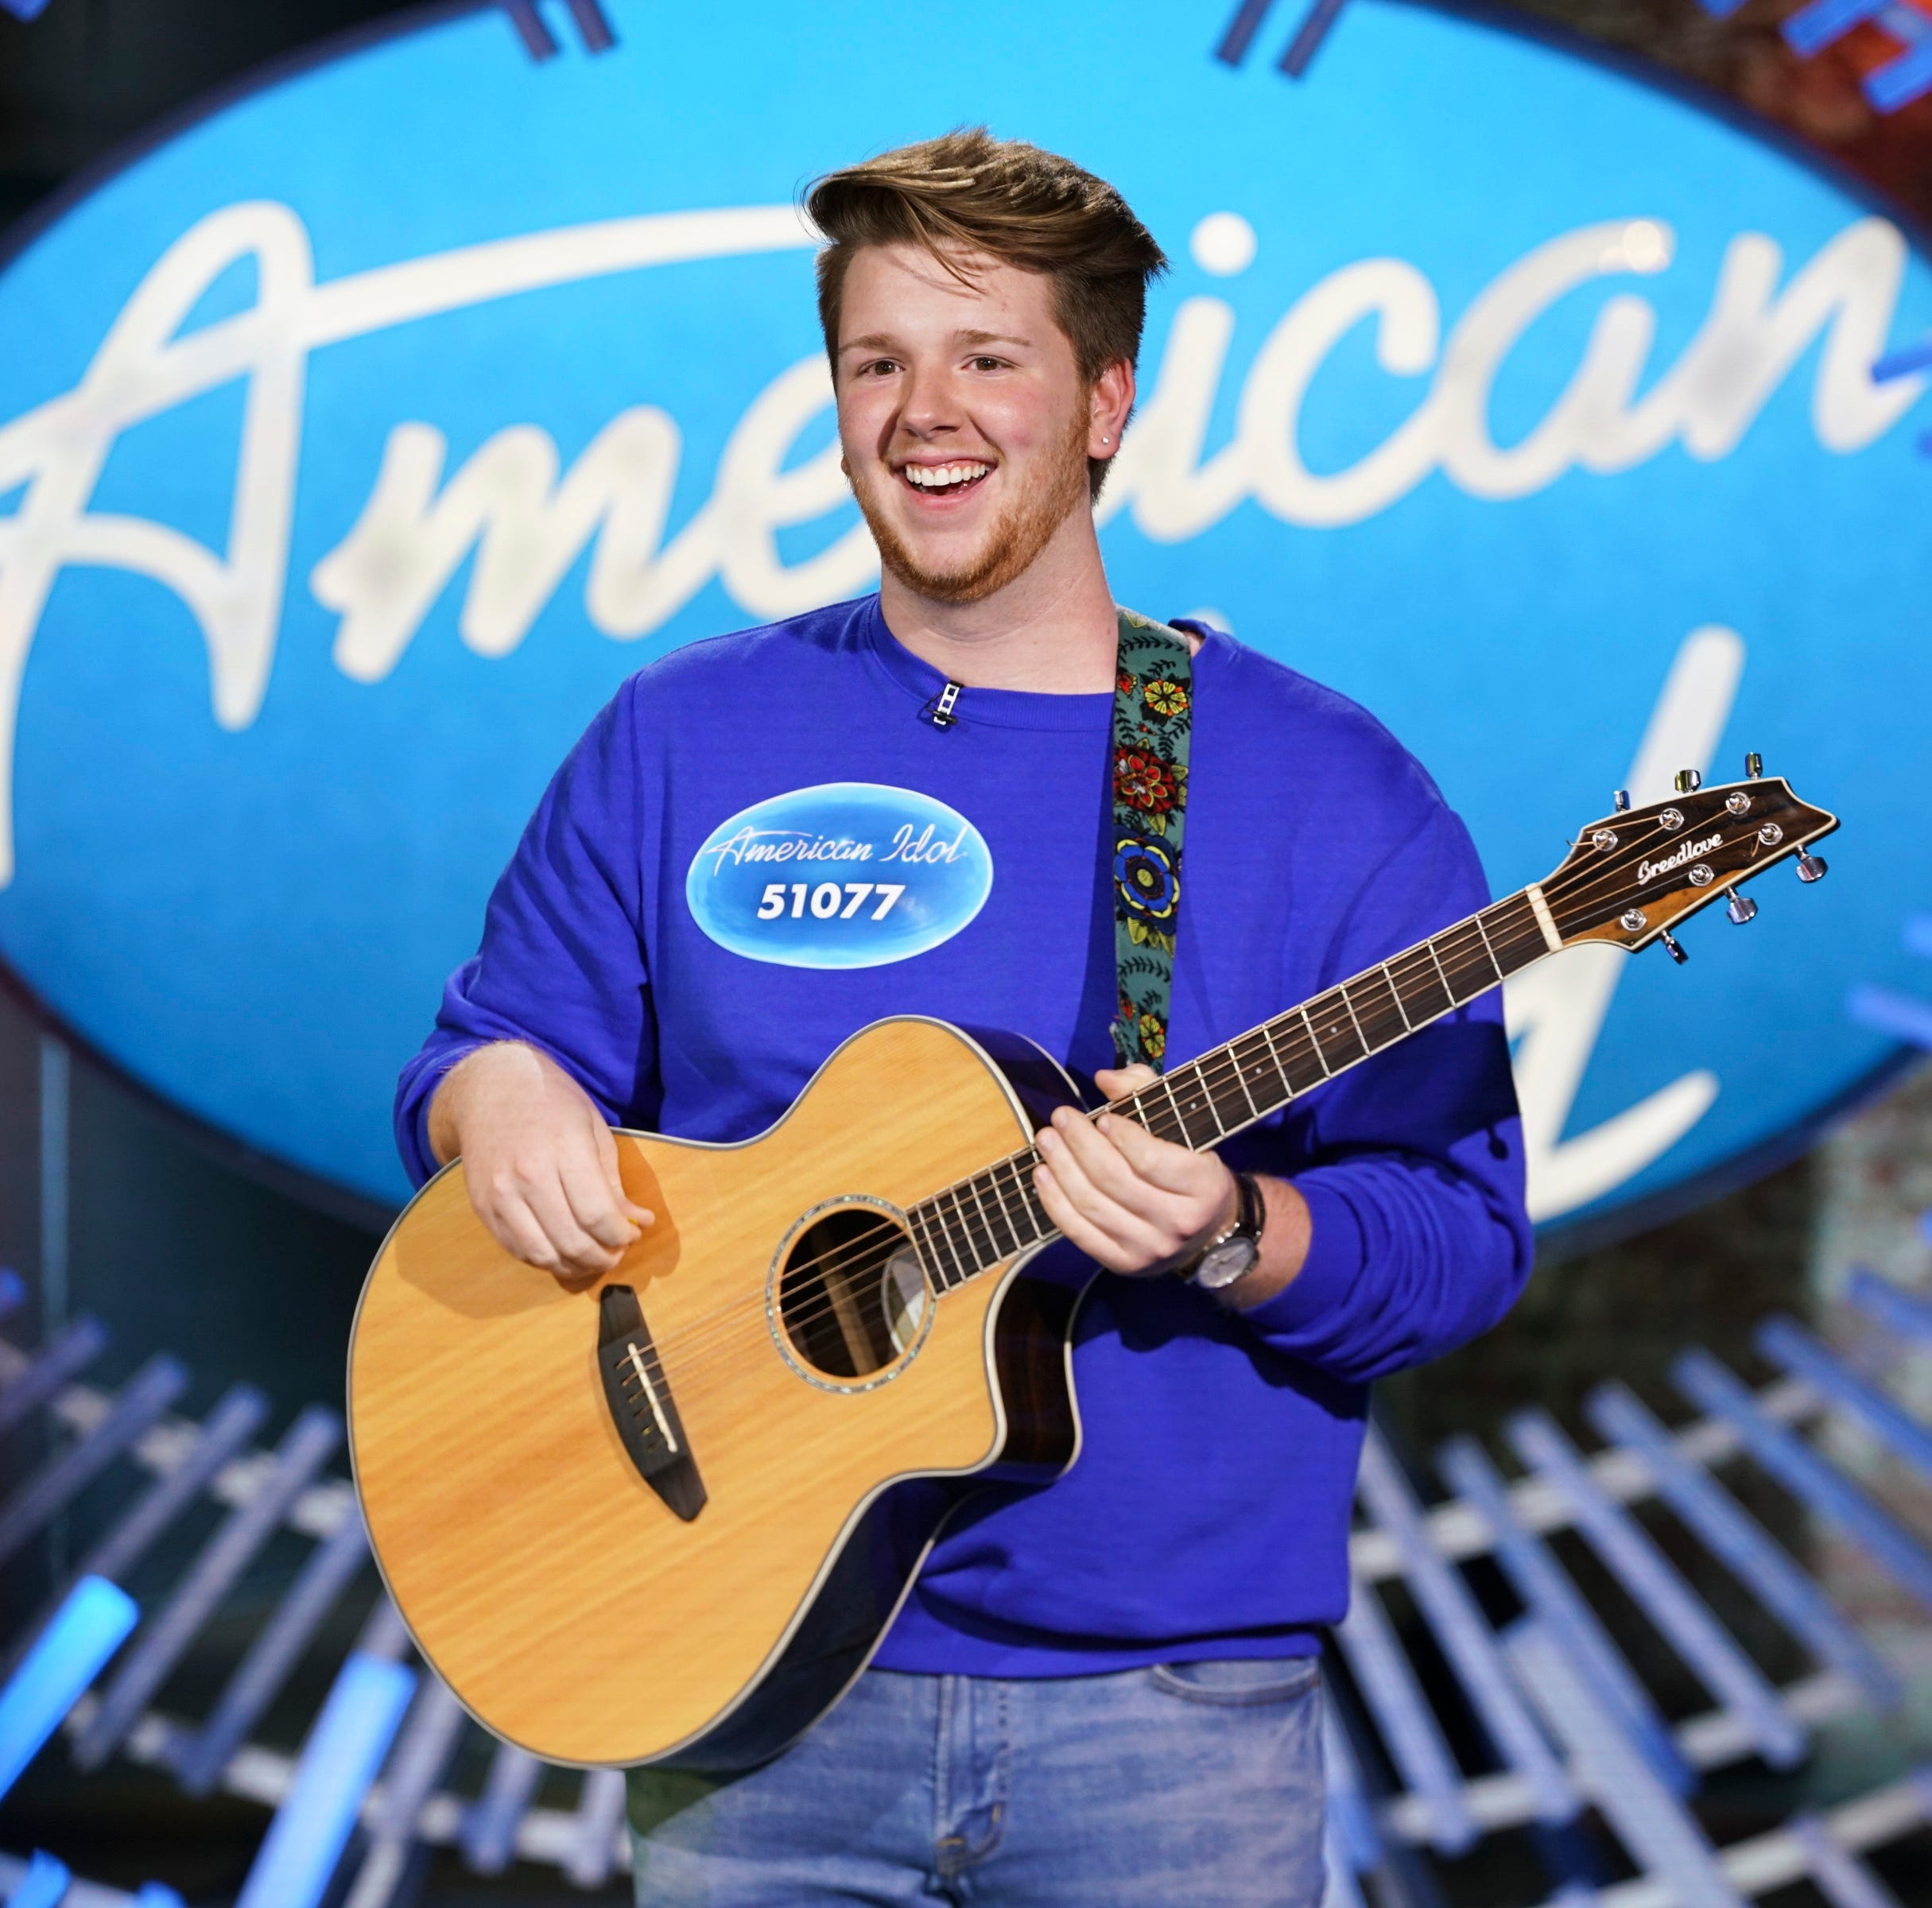 'American Idol' contestant from York County to sing national anthem at Revs' opener